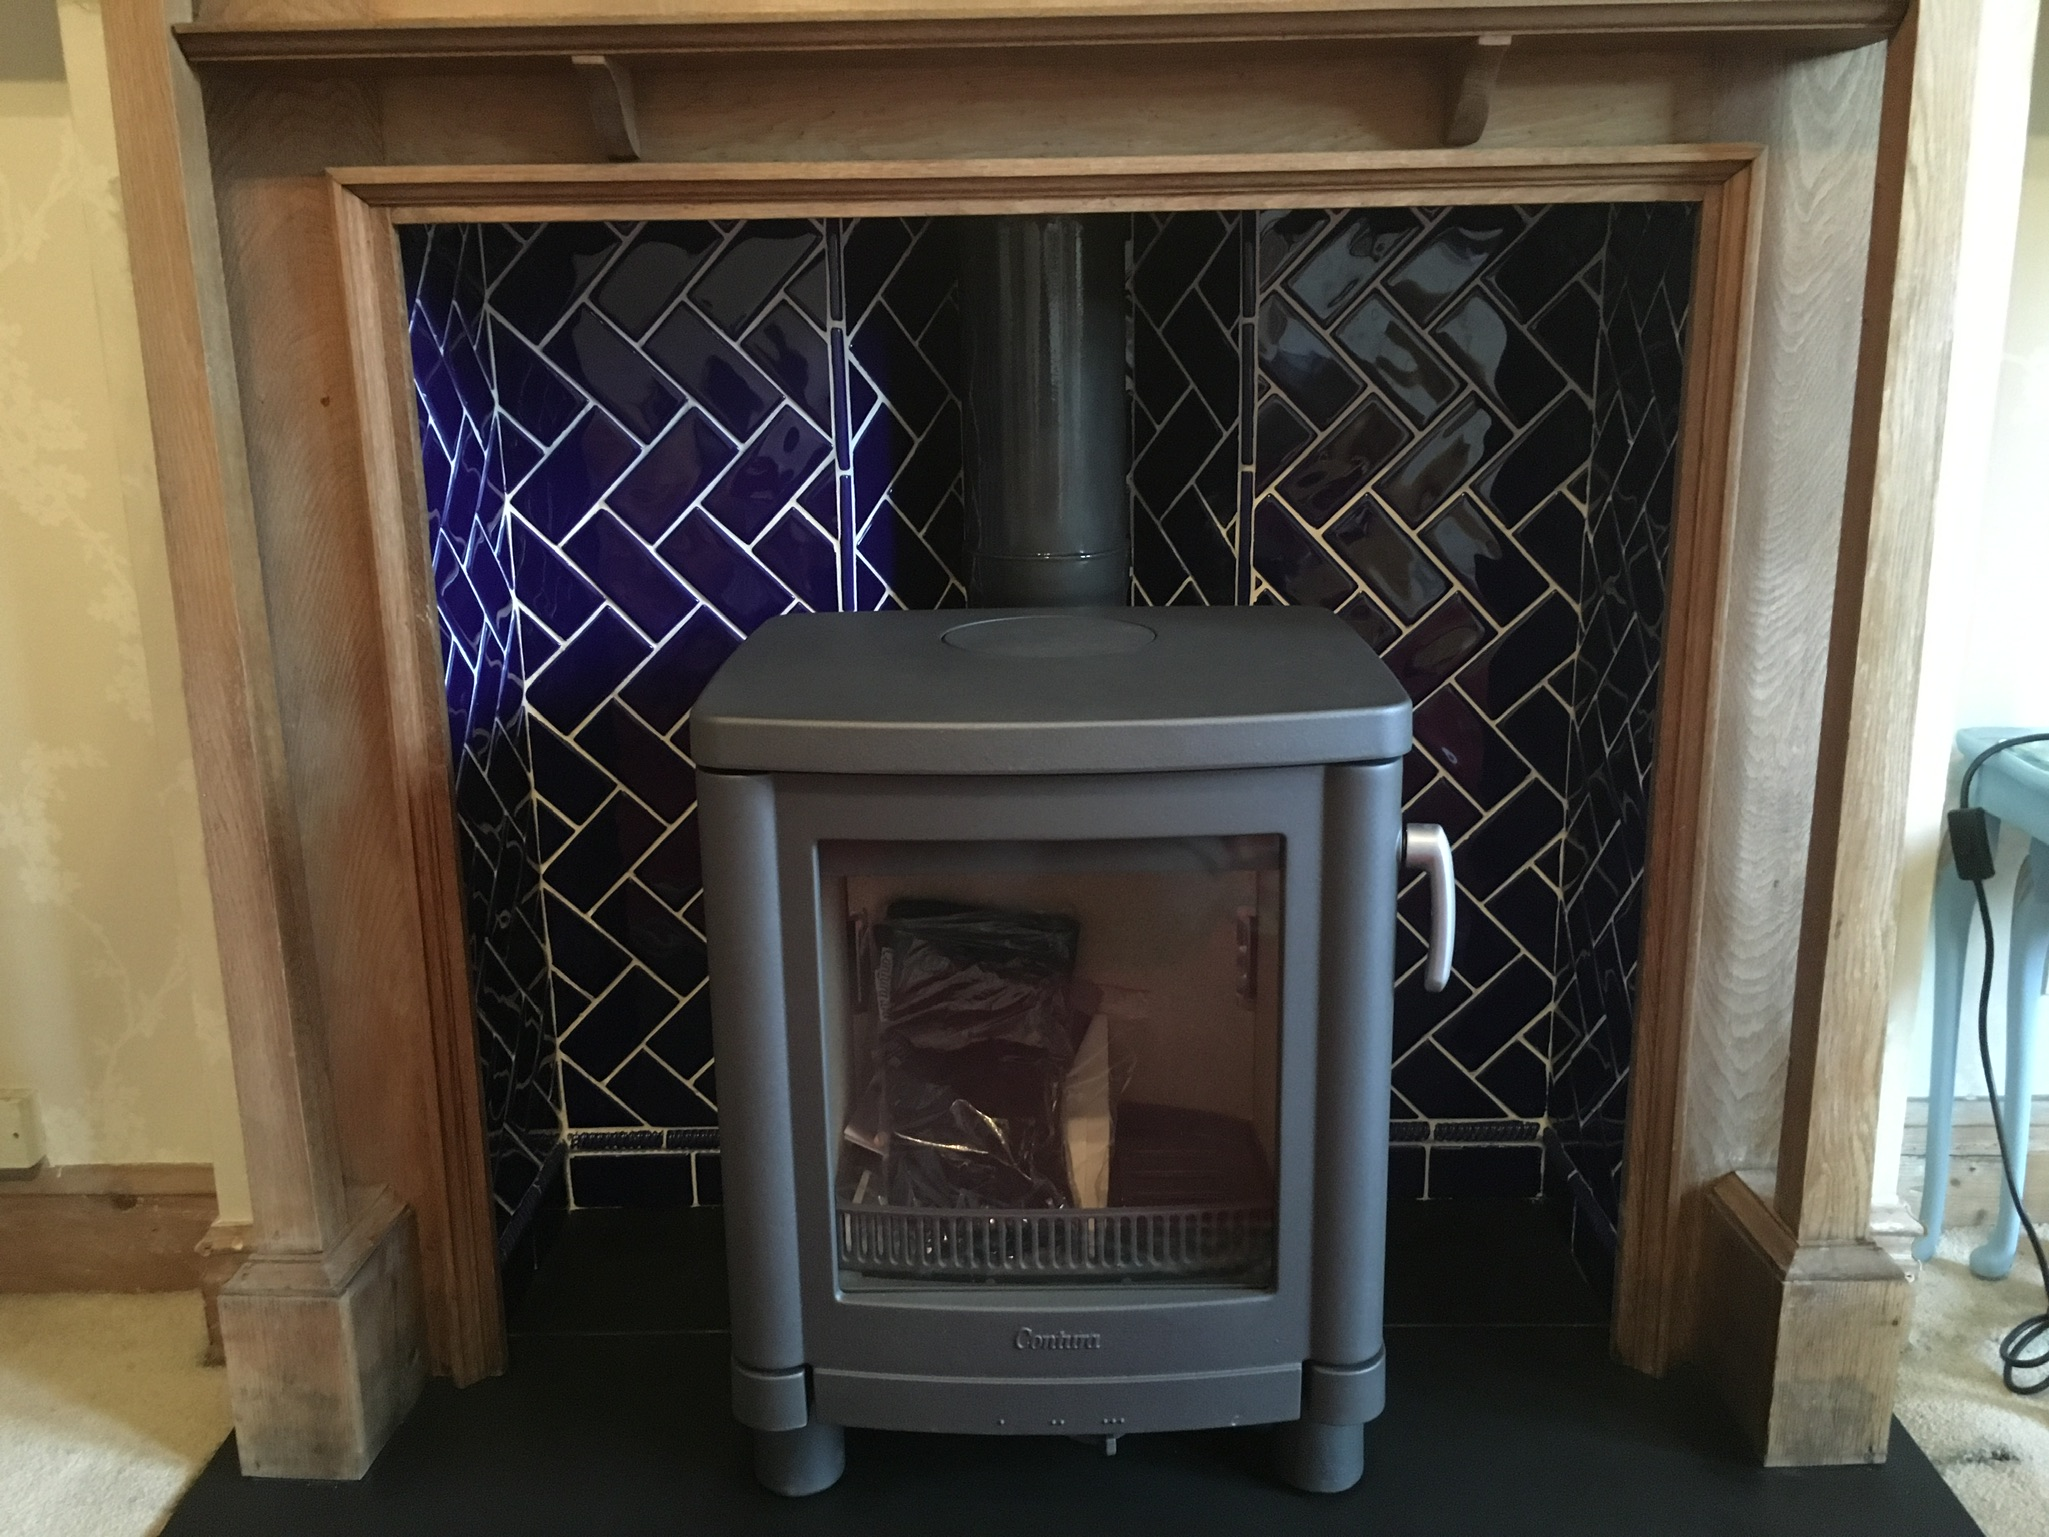 Stove in fireplace with blue tiled back and wood mantlepiece